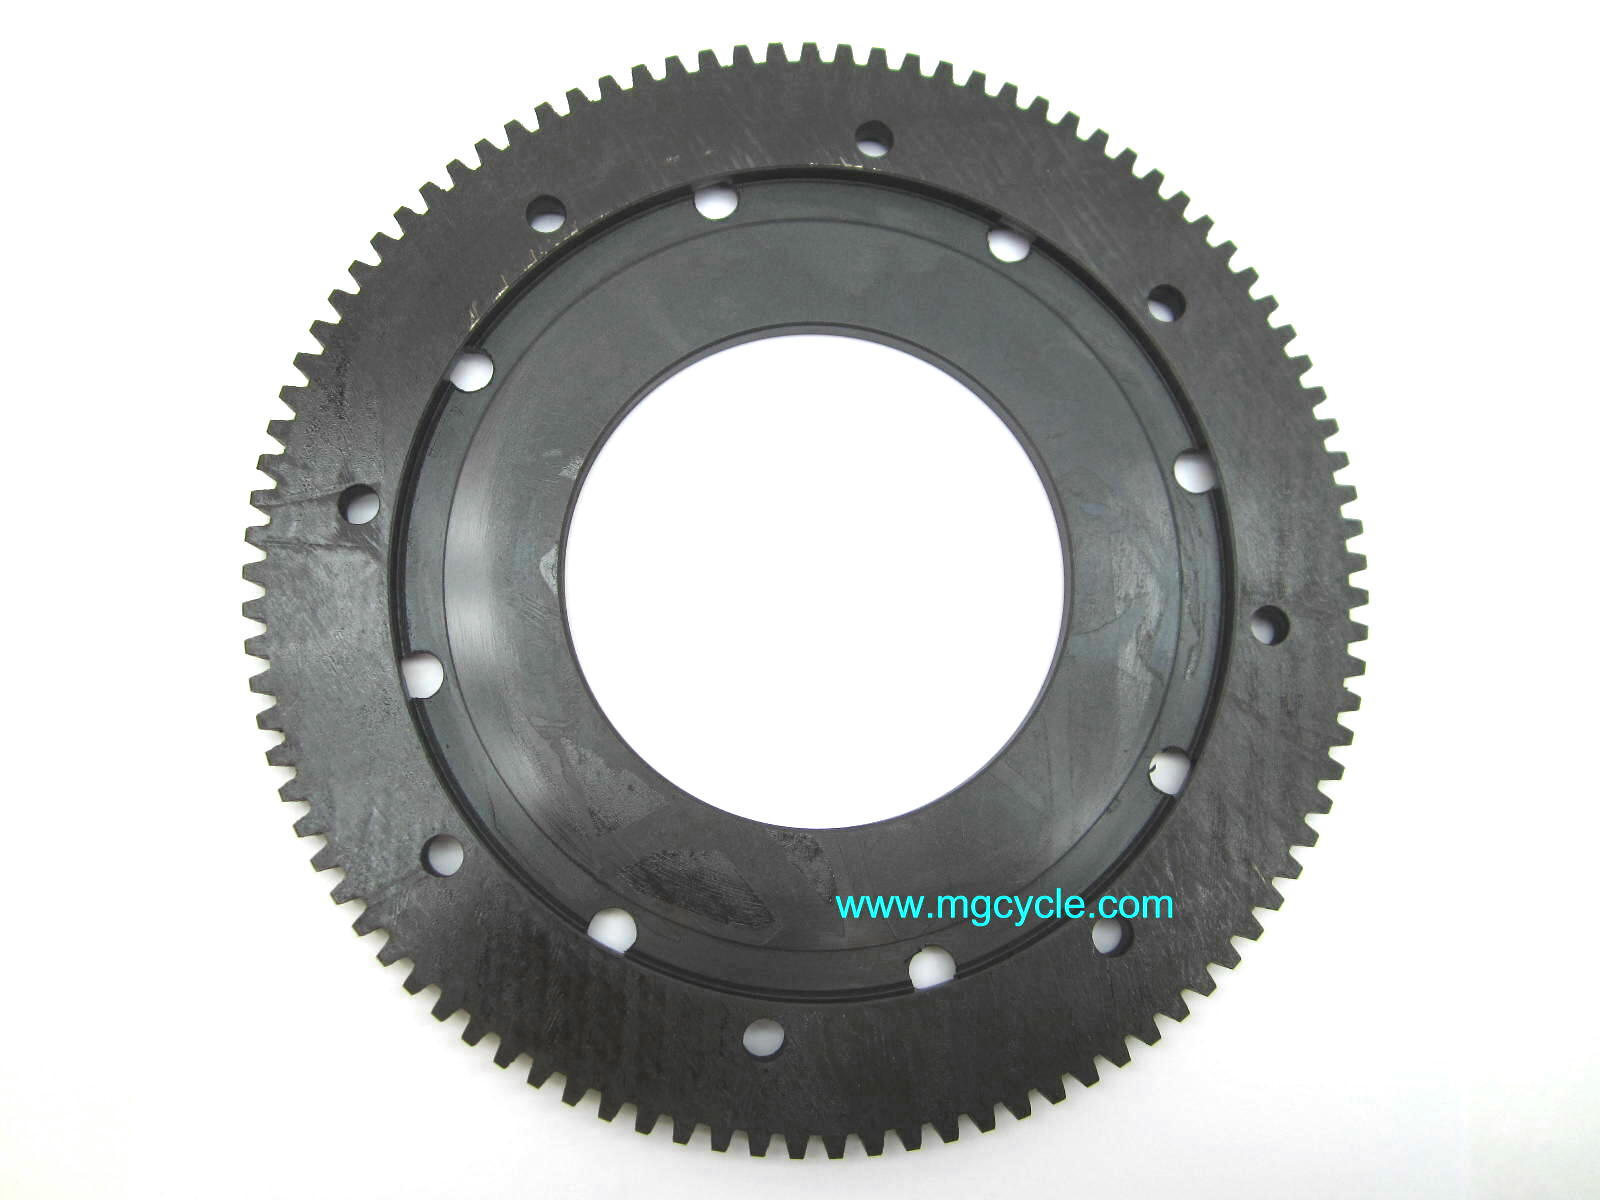 Starter ring gear, flywheel ring gear 1967-2012 GU17067900